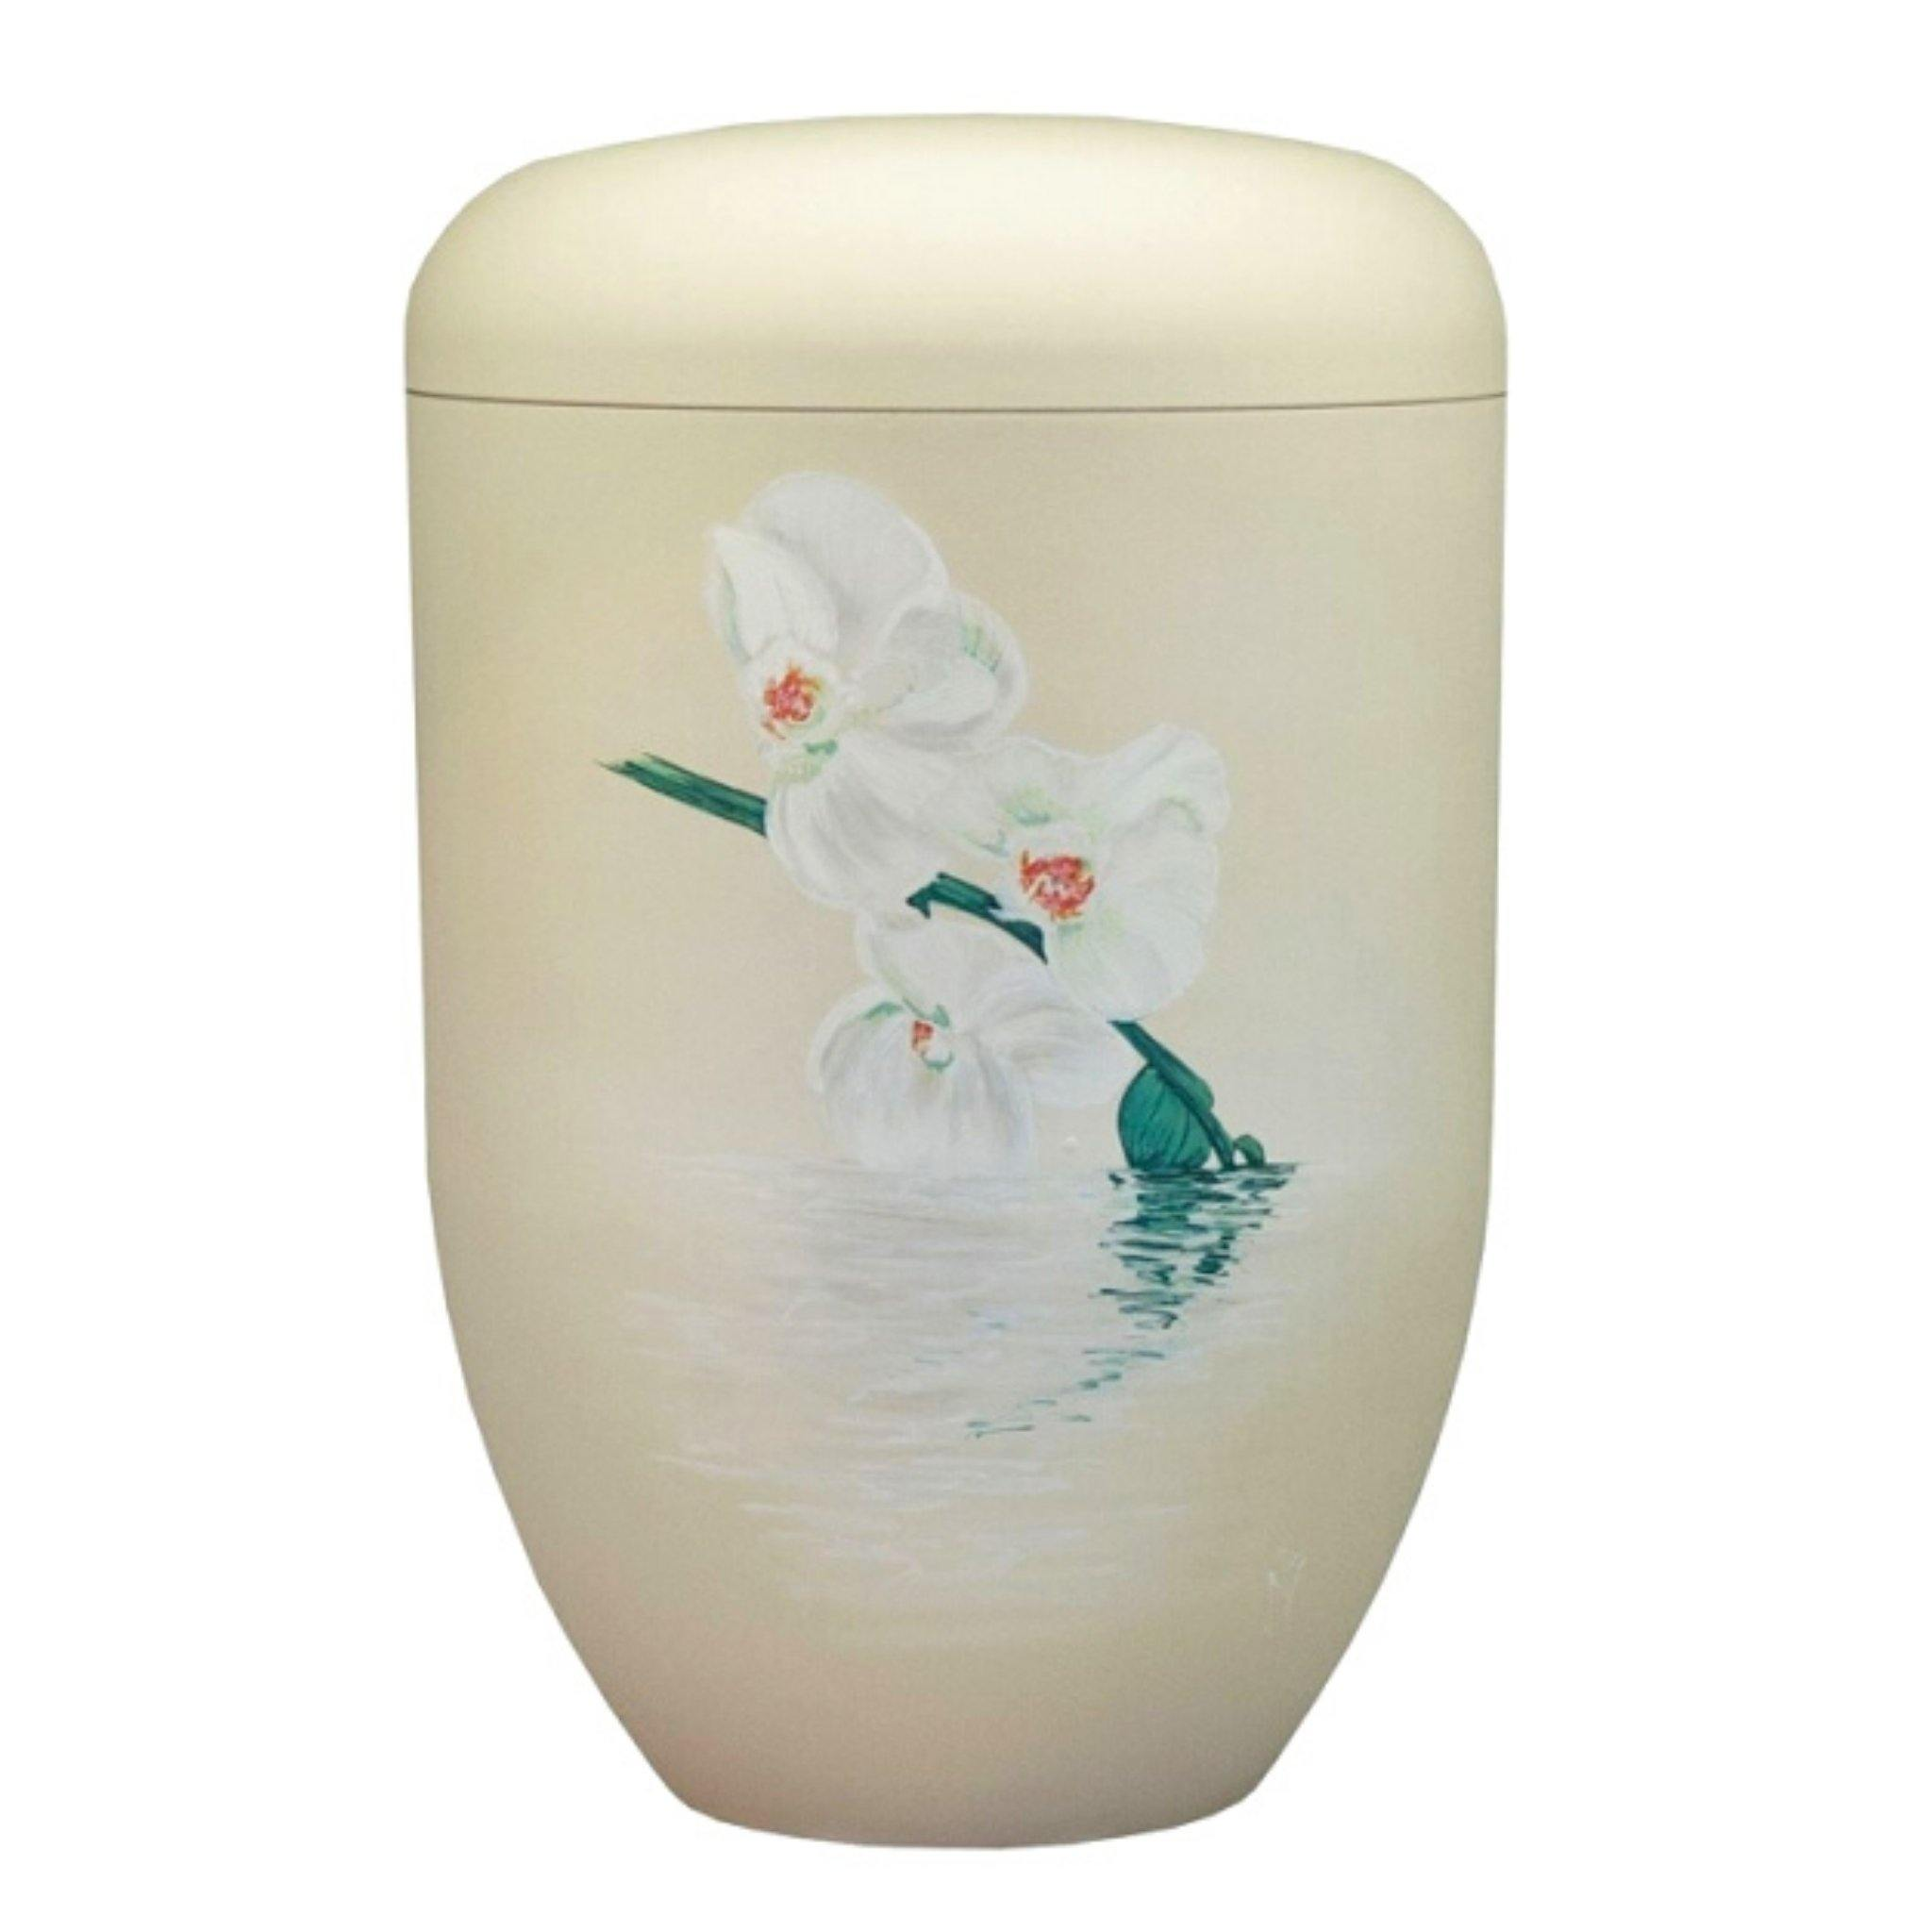 Polperro Orchid Handpainted Bio Cremation Ashes Urn - Urns UK